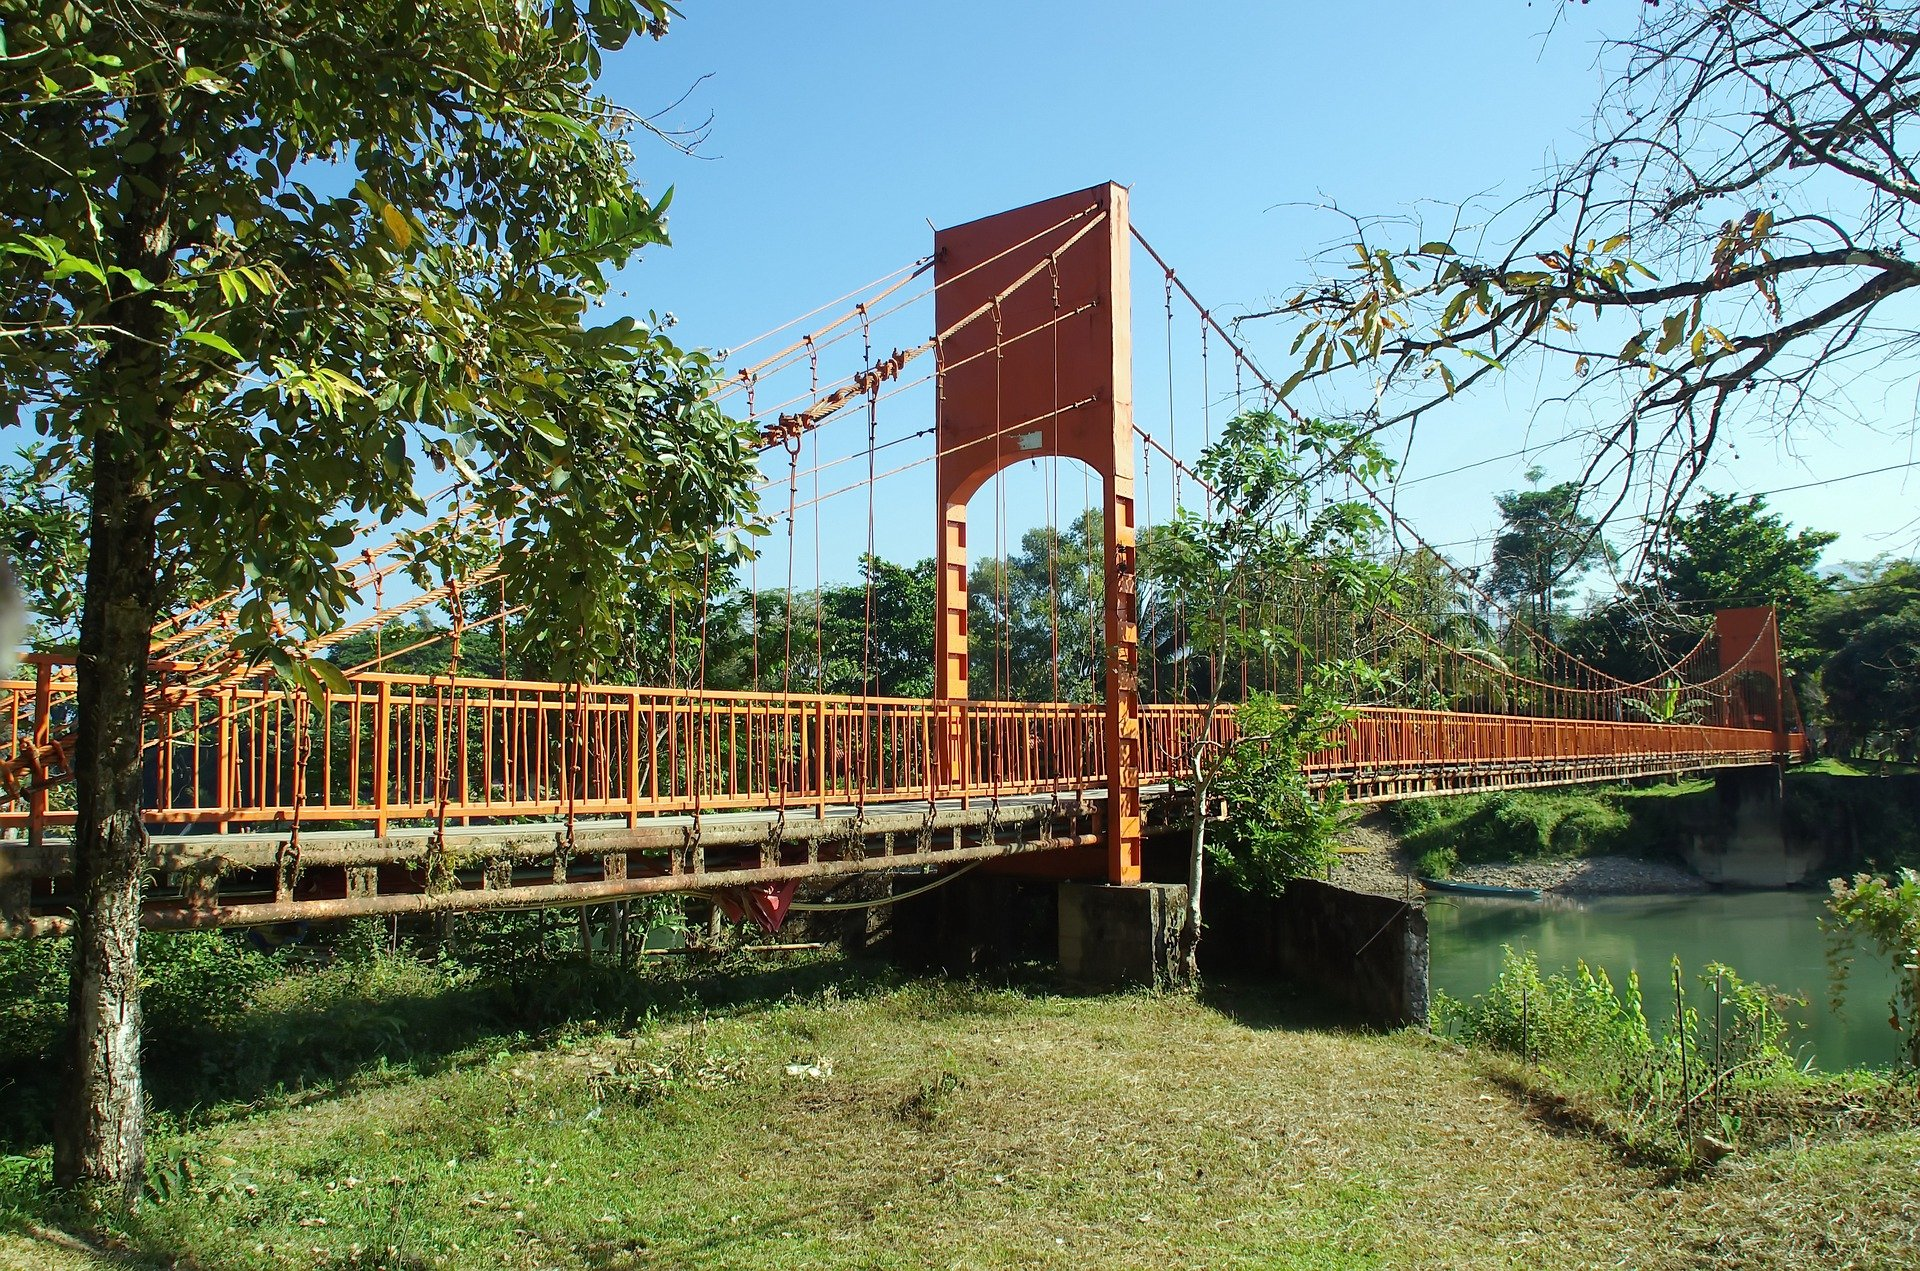 Vang Vieng Suspension Bridge